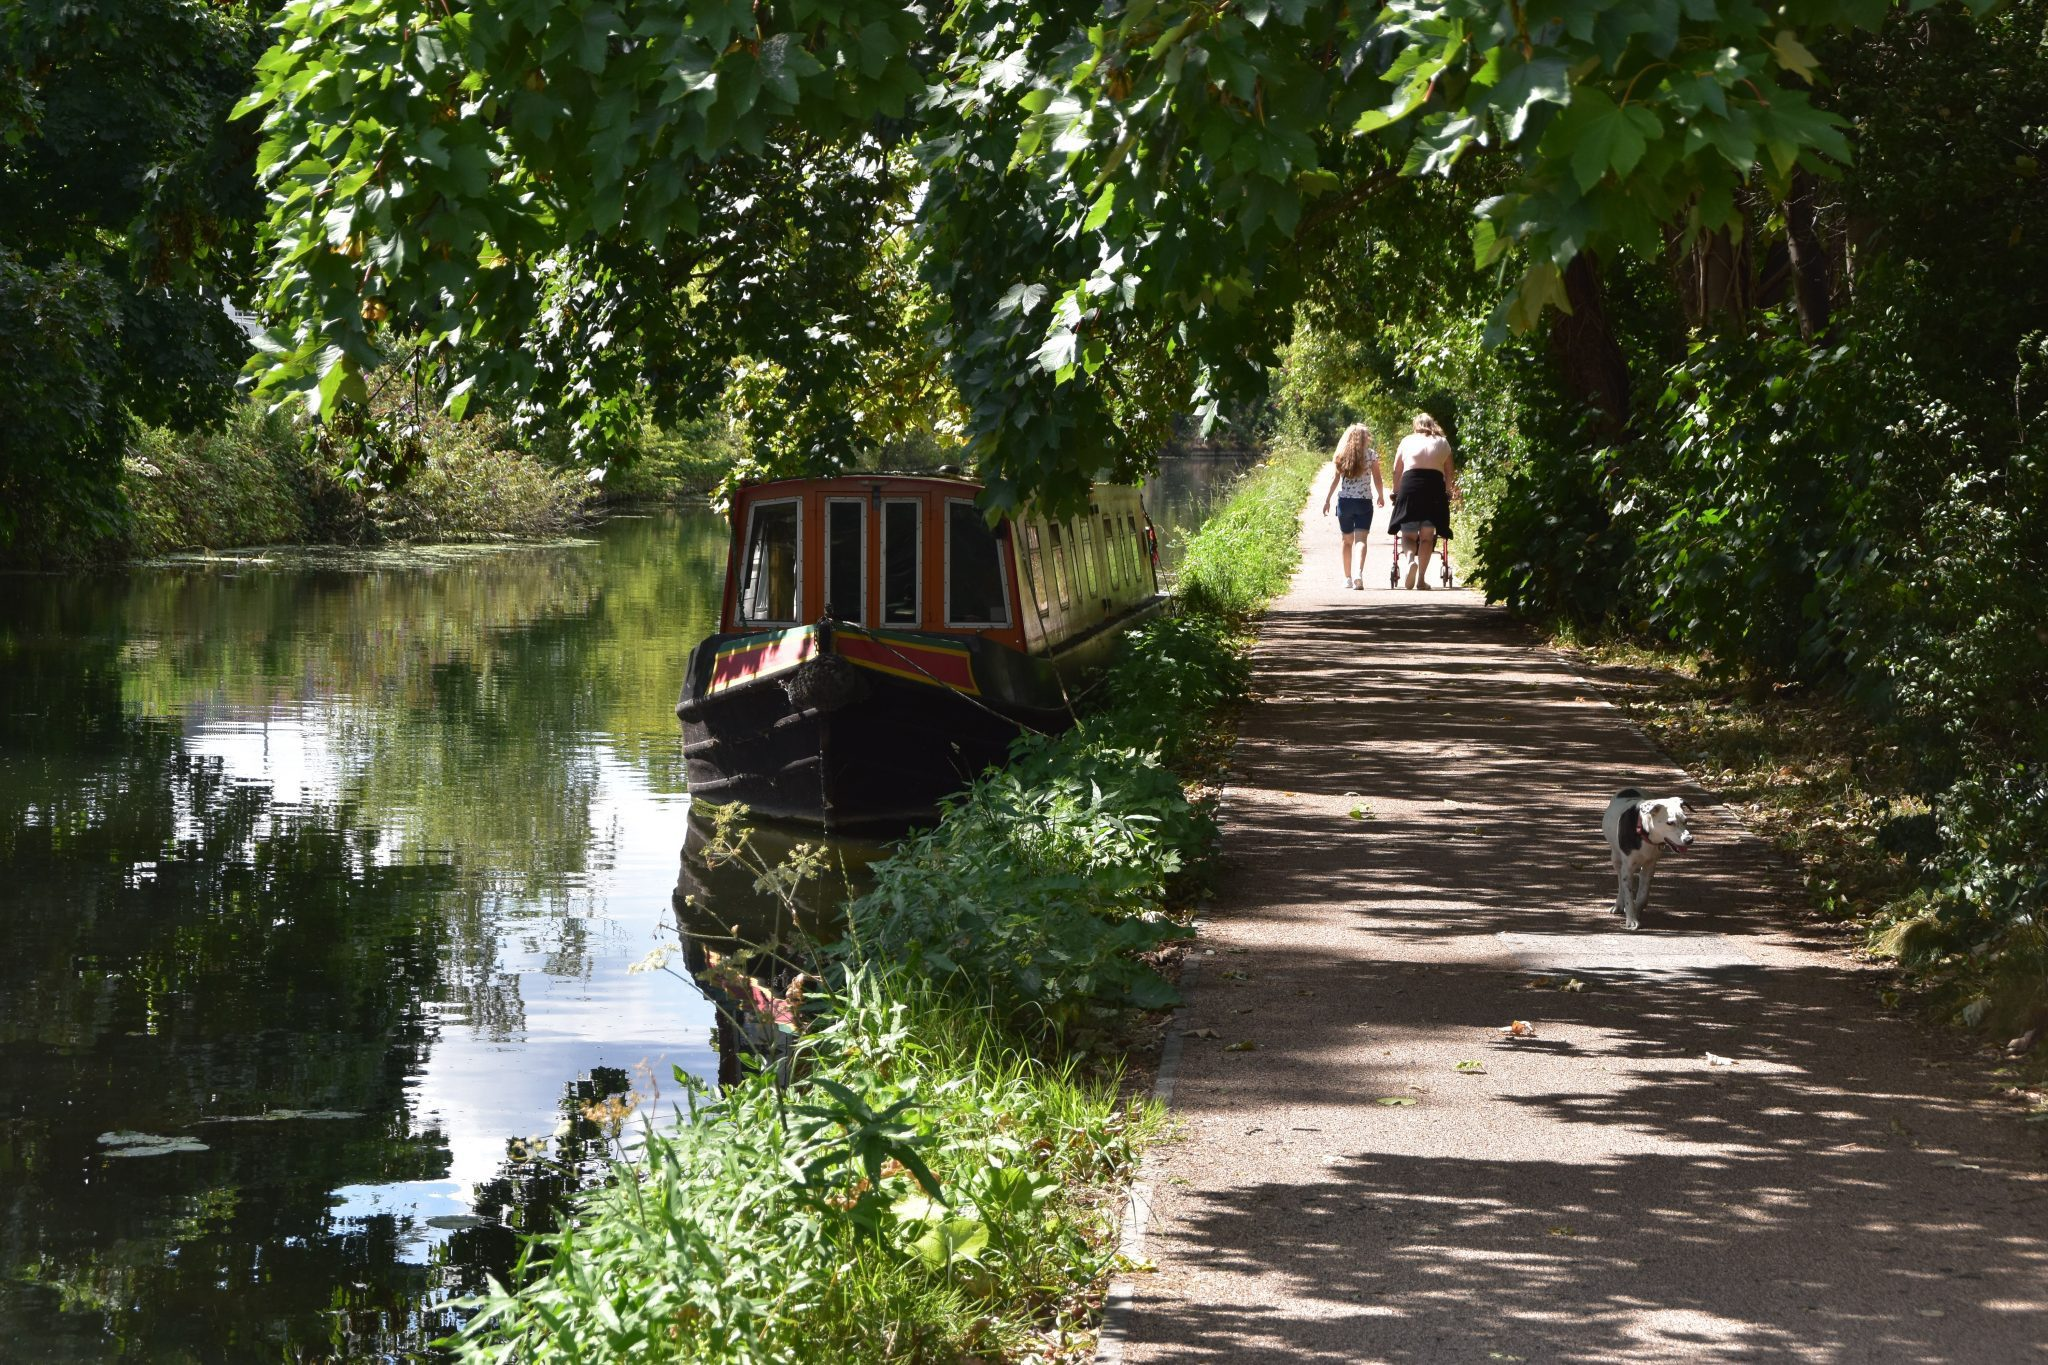 On the London LOOP a dog strolls by the Grand Union Canal with narrow boat on water